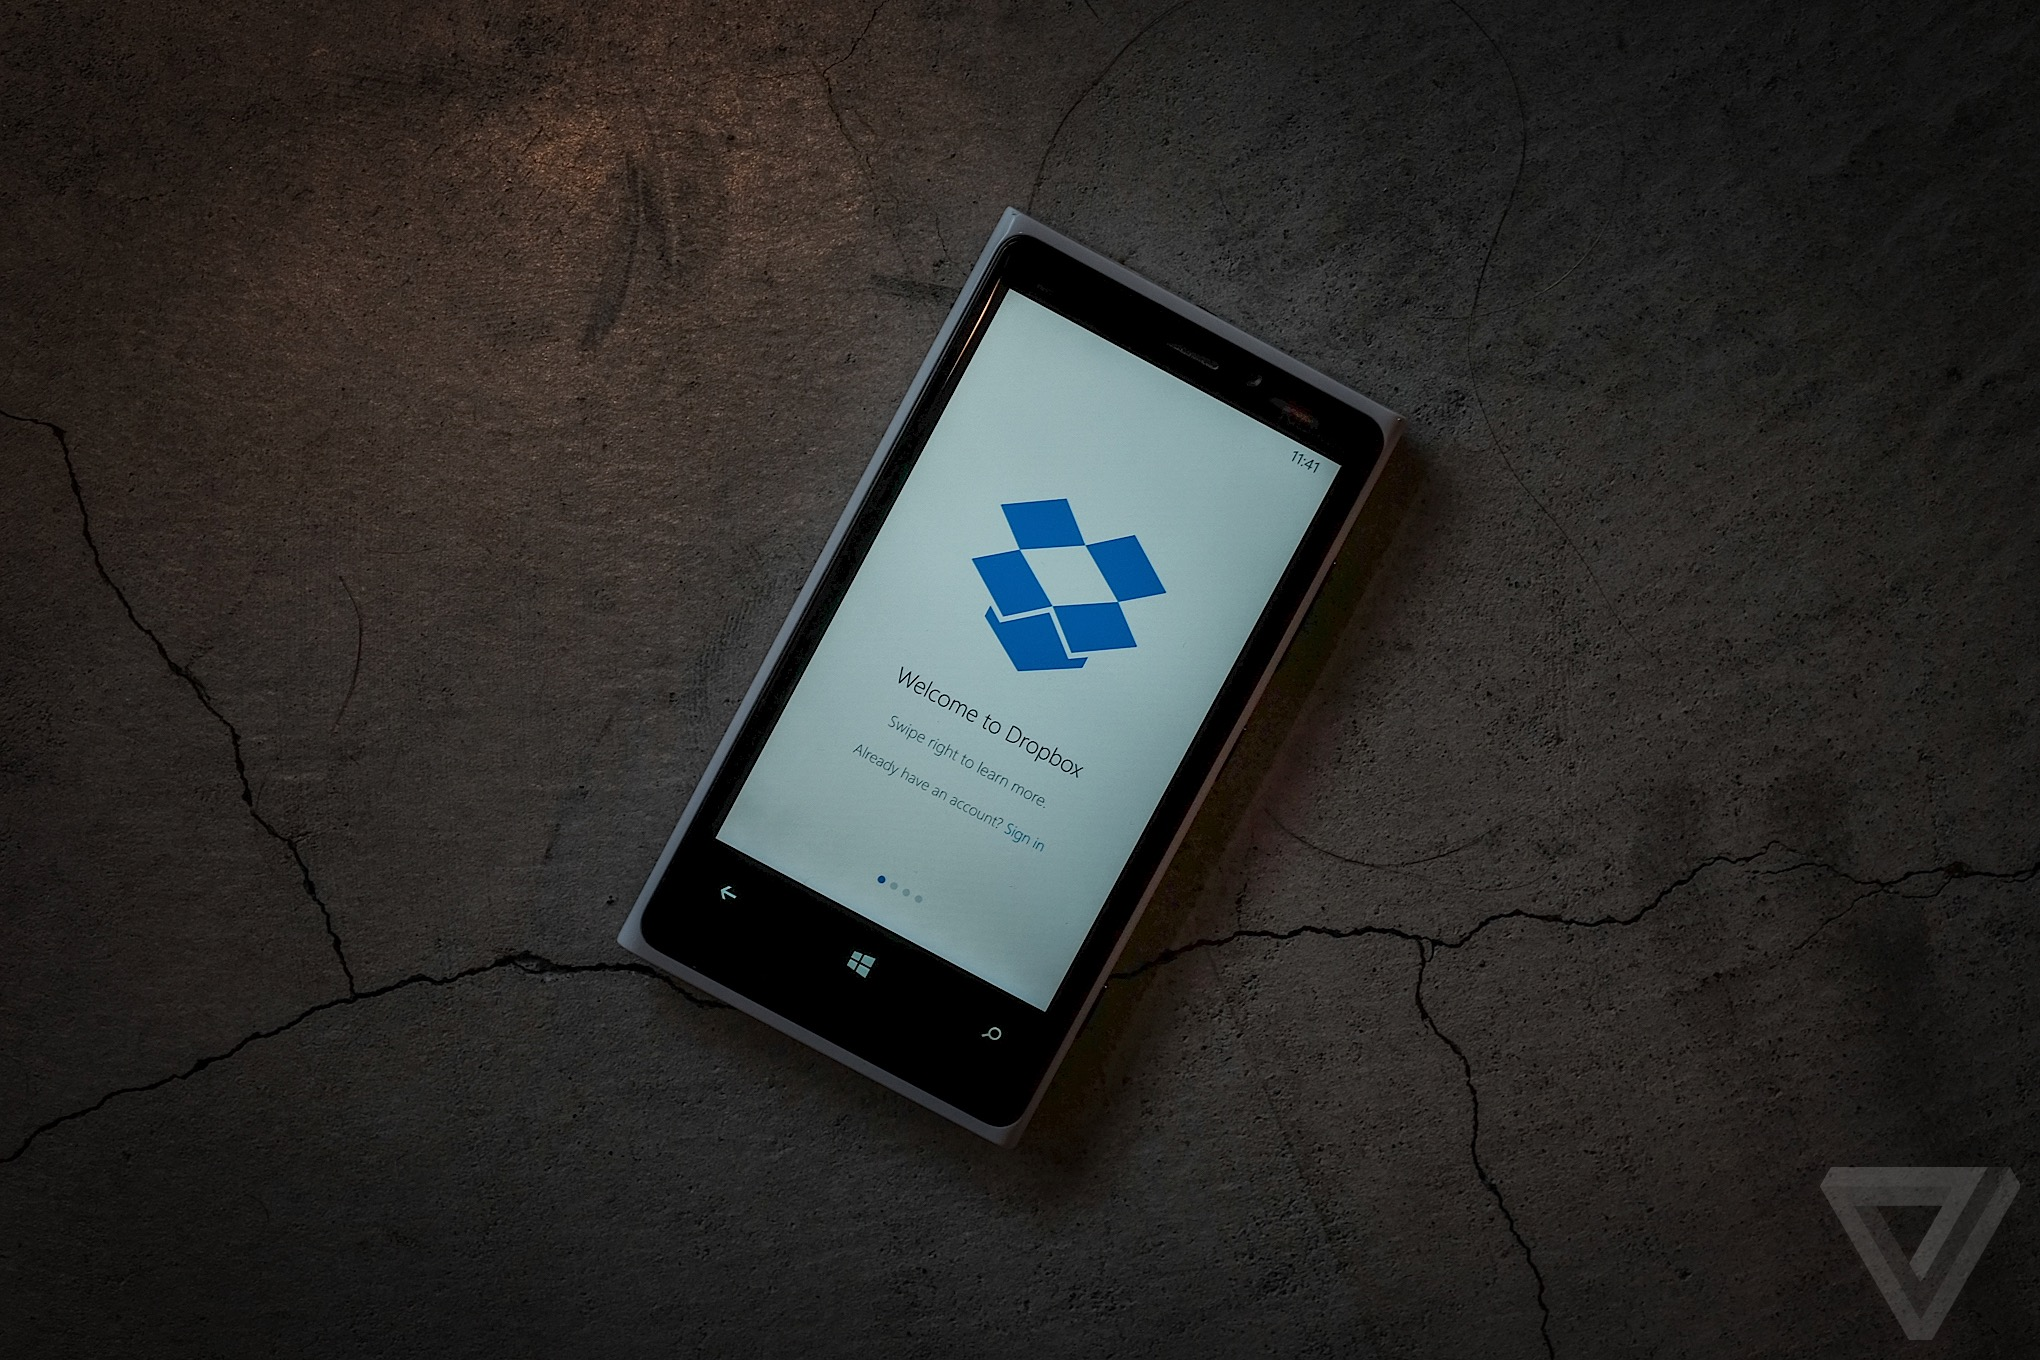 Dropbox now lets you add comments to hosted files - The Verge